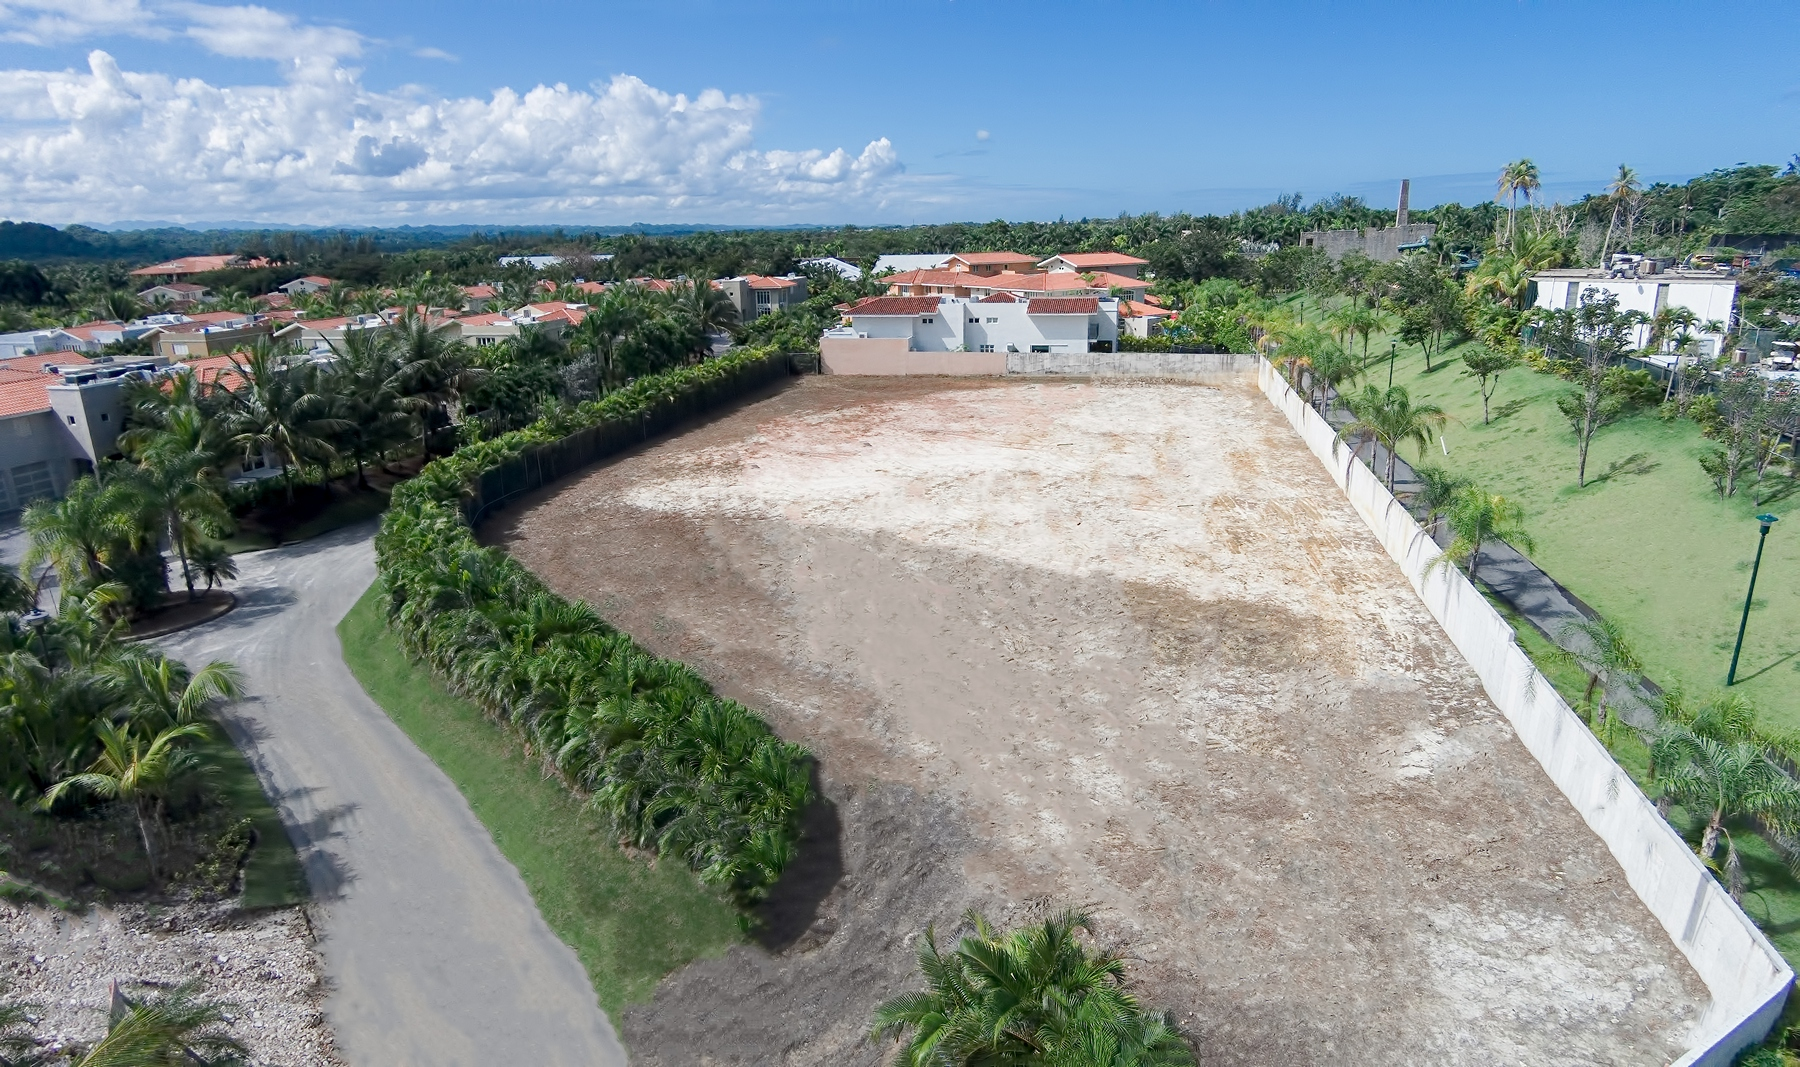 Terreno por un Venta en Dorado Beach East Unique Lot Opportunity 323 Dorado Beach East Dorado, Puerto Rico 00646 Puerto Rico